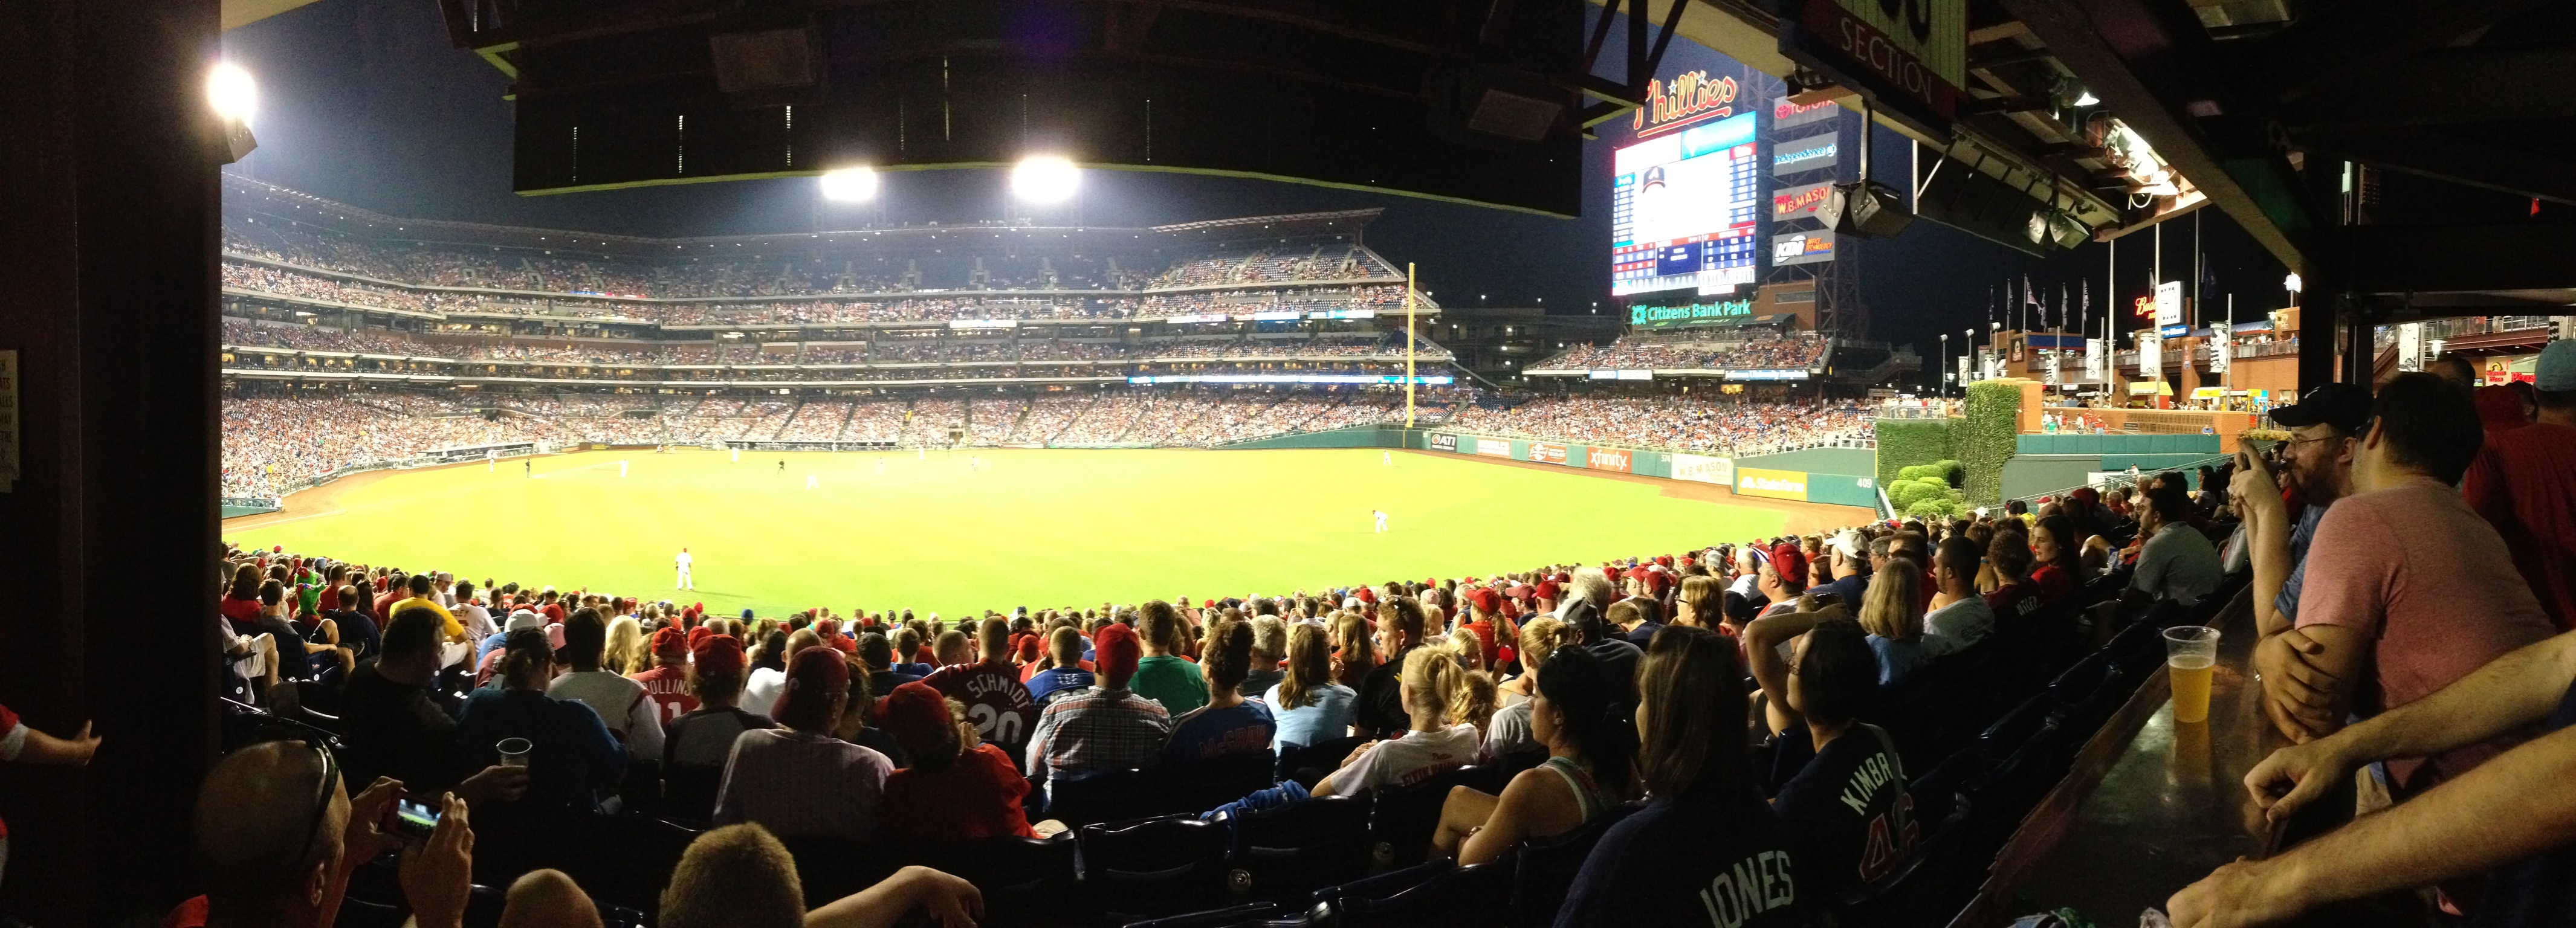 phillies game new seats1